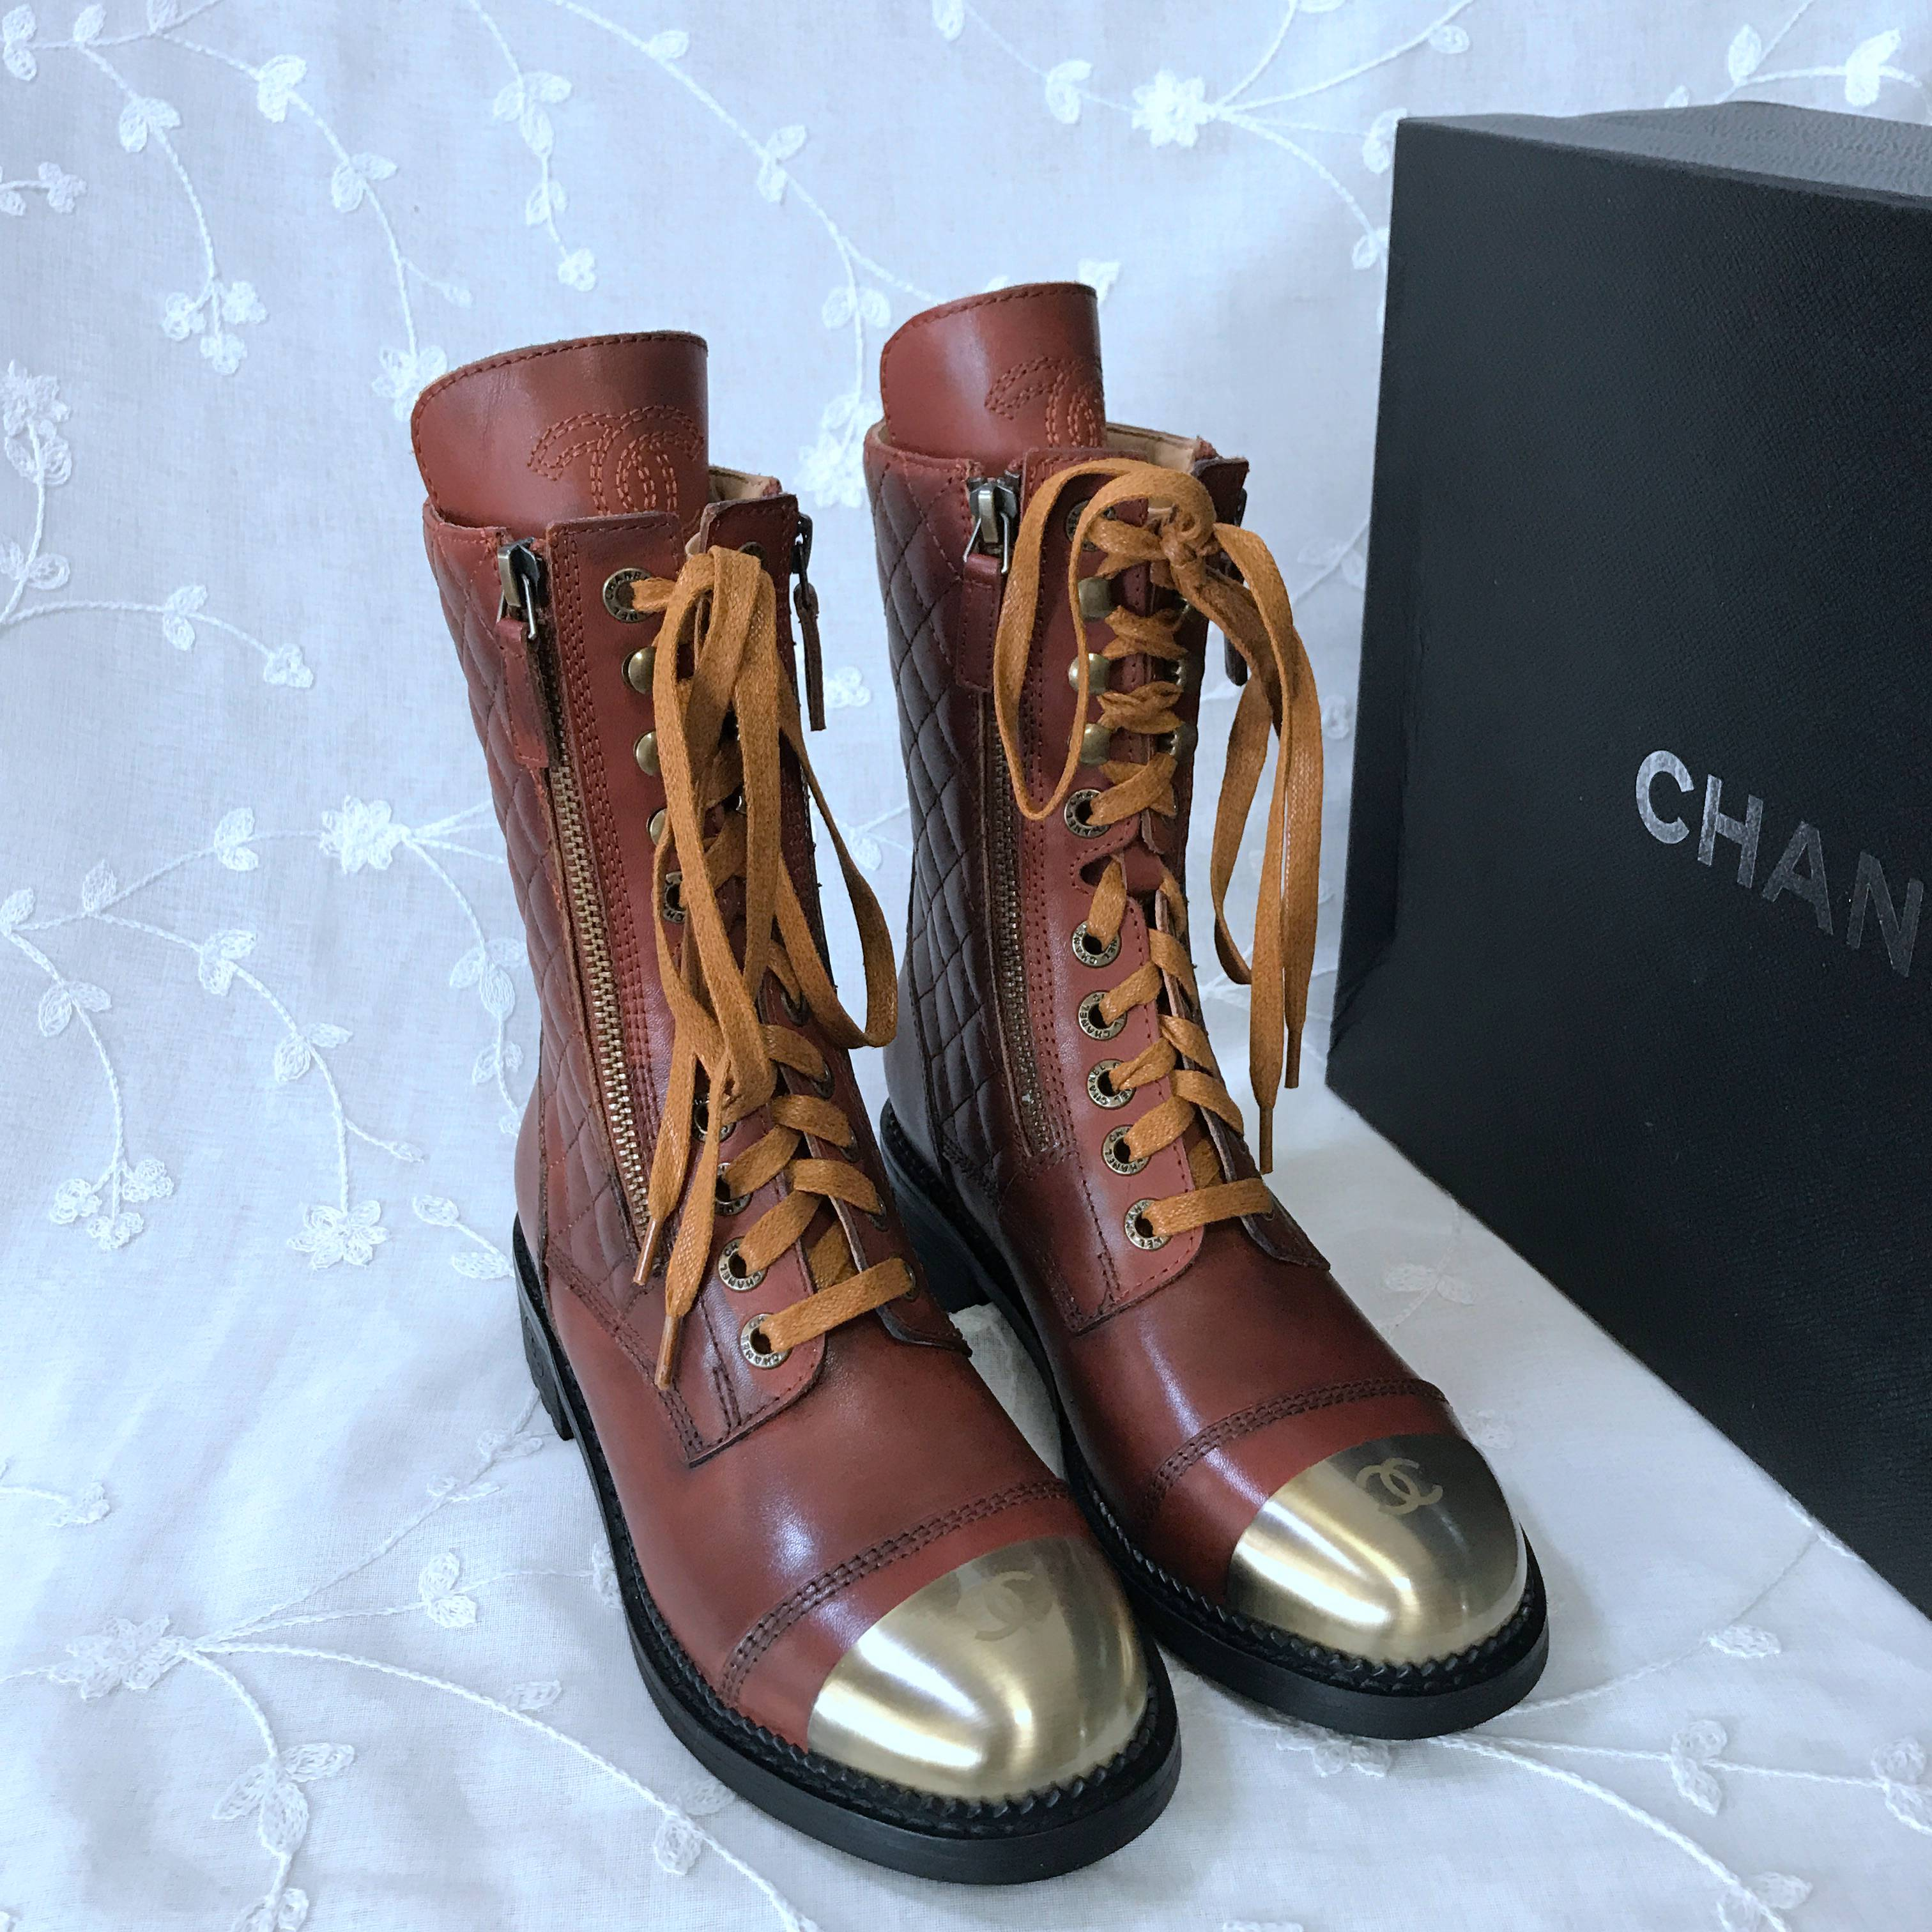 Chanel Boots 1321897